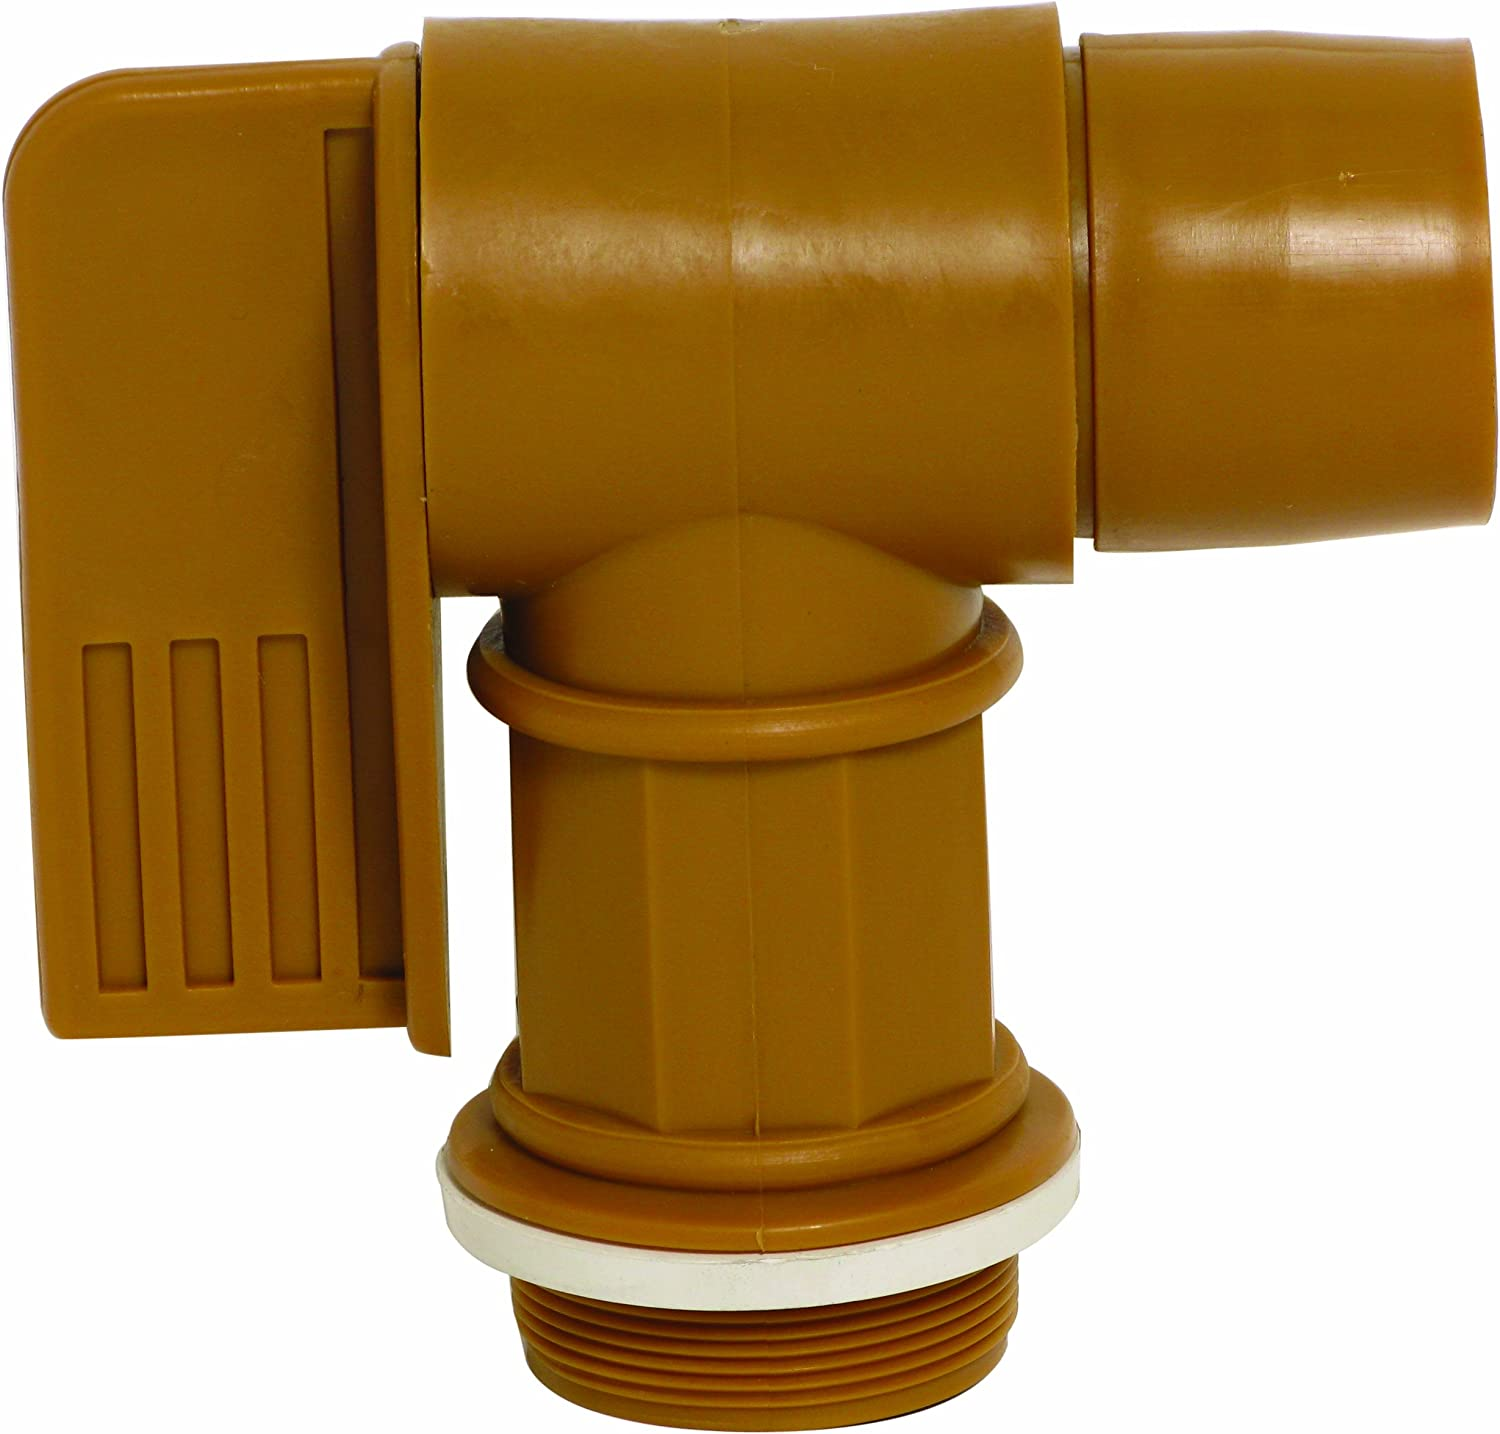 Wesco 272176 Polyethylene Drum Faucet with EPDM Gasket 2 NPT Connection